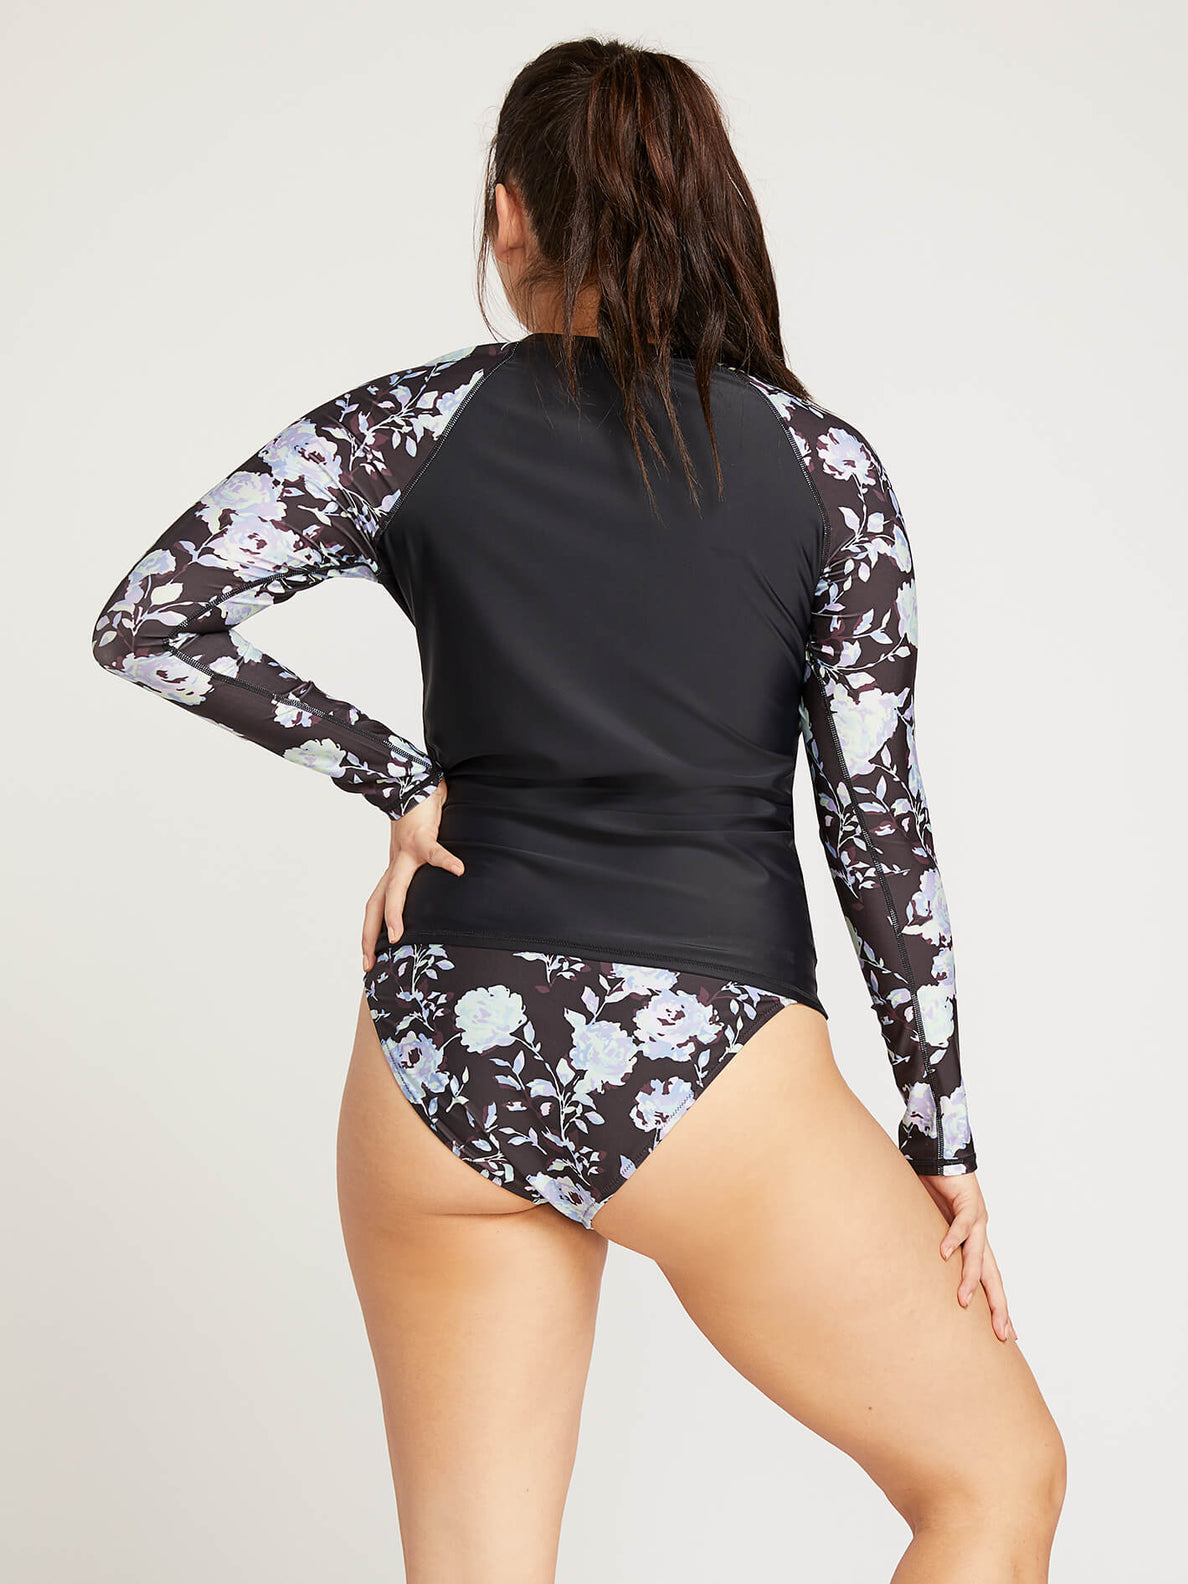 Noir U Sure Long Sleeve Rashguard In Black, Back Extended Size View